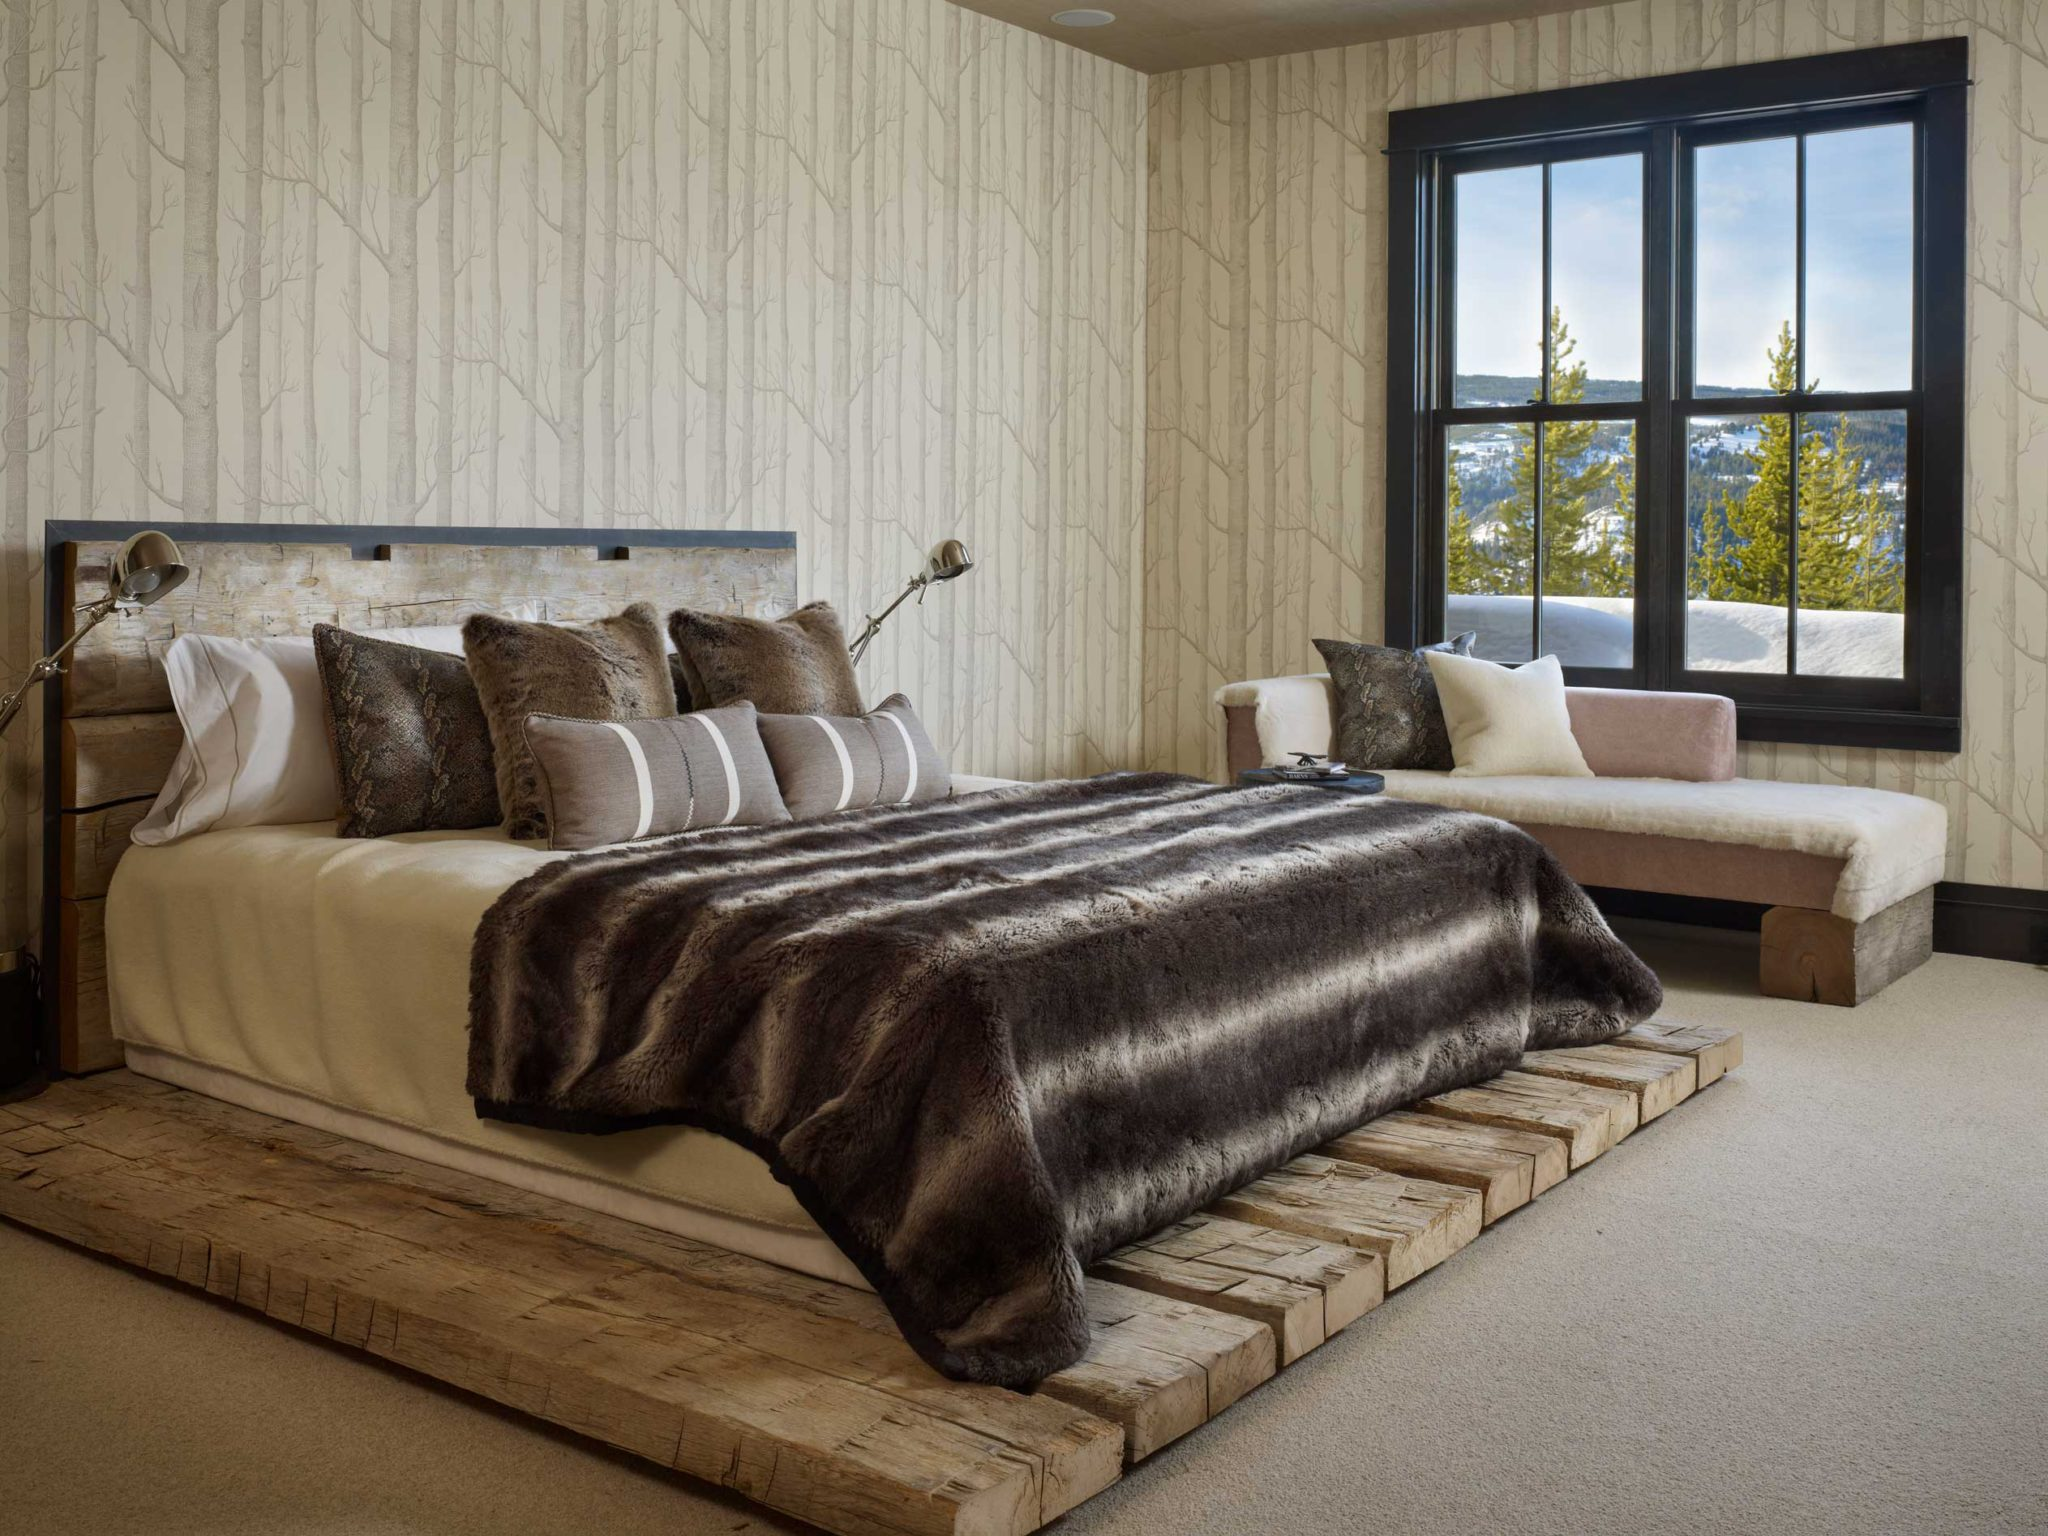 High Alpine Ranch Residence, Guest Bedroom - Yellowstone Club, MT, by LKID